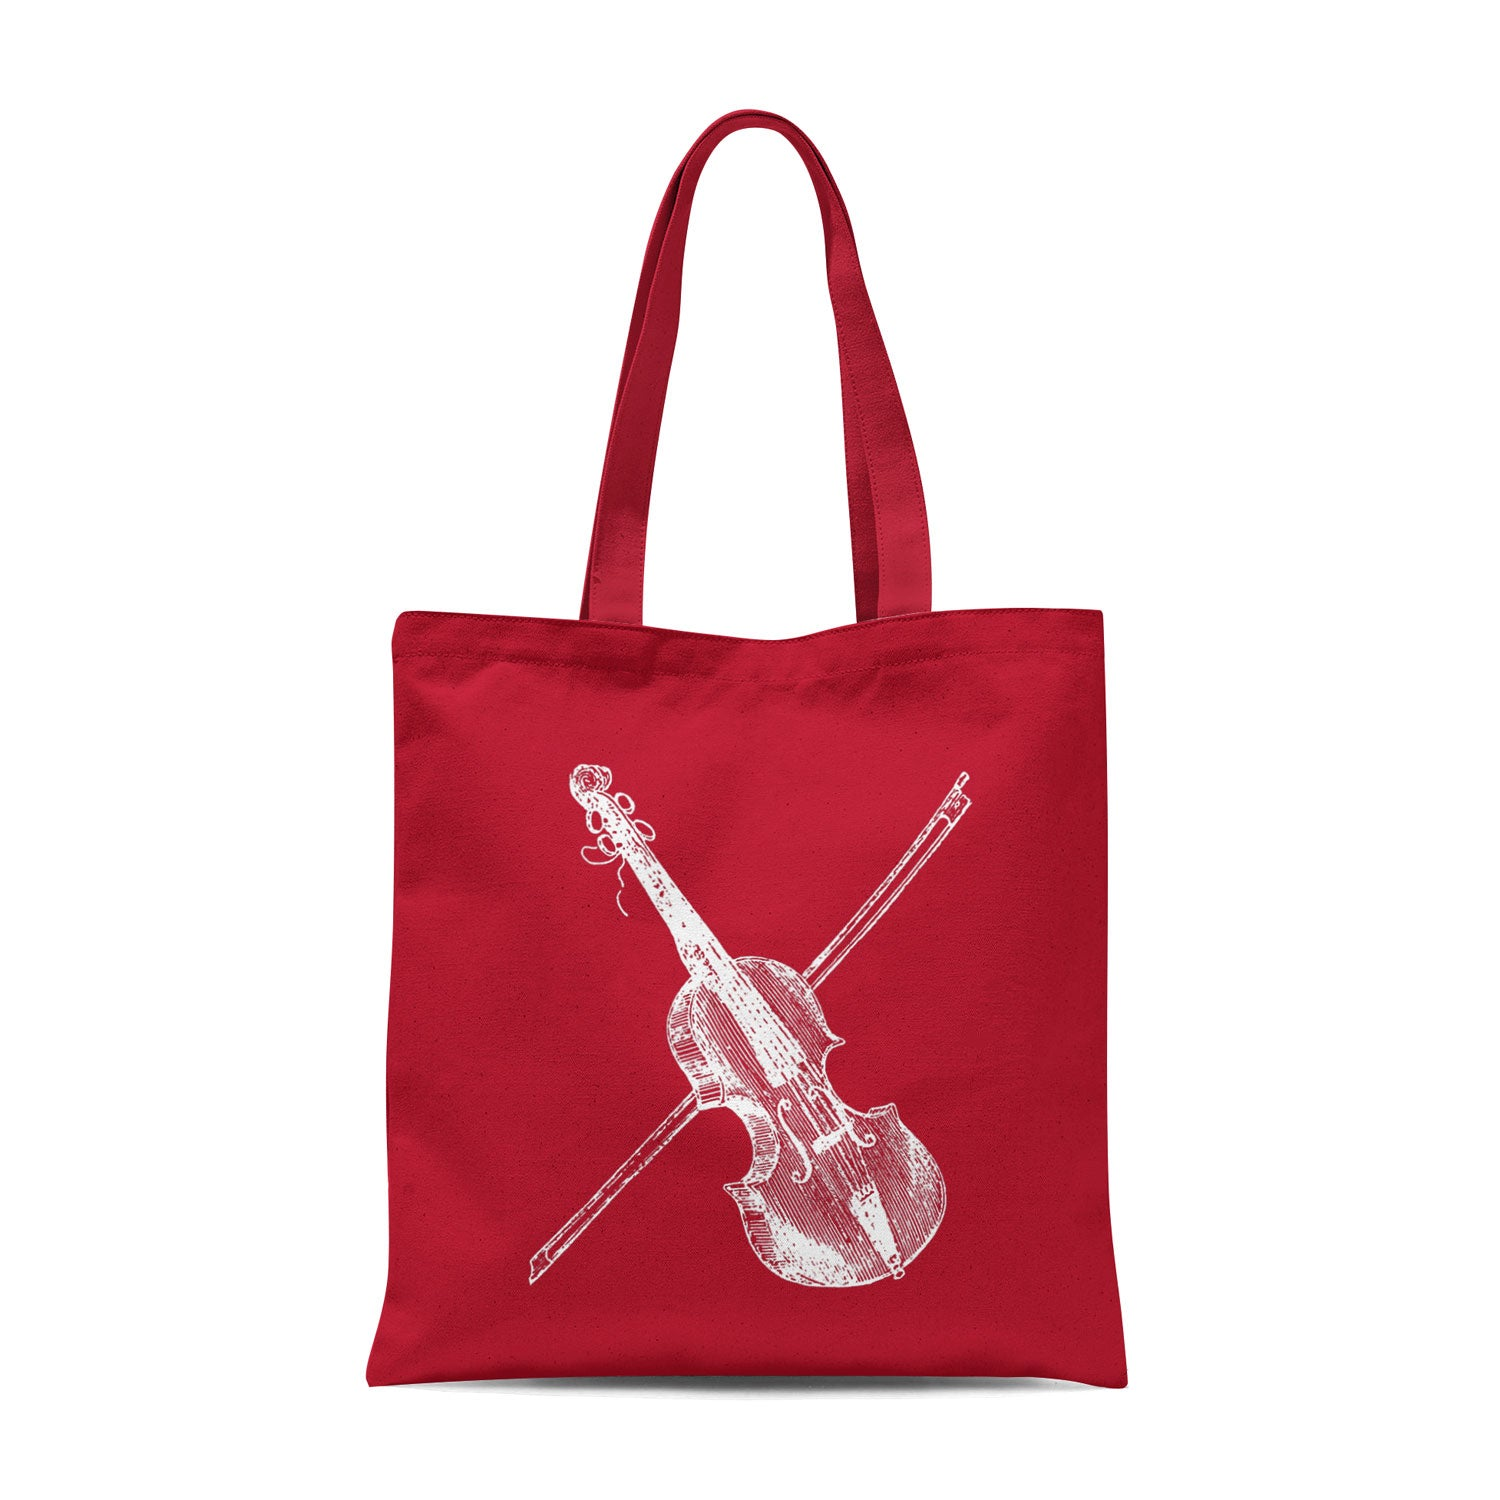 red tote bag with white violin illustration